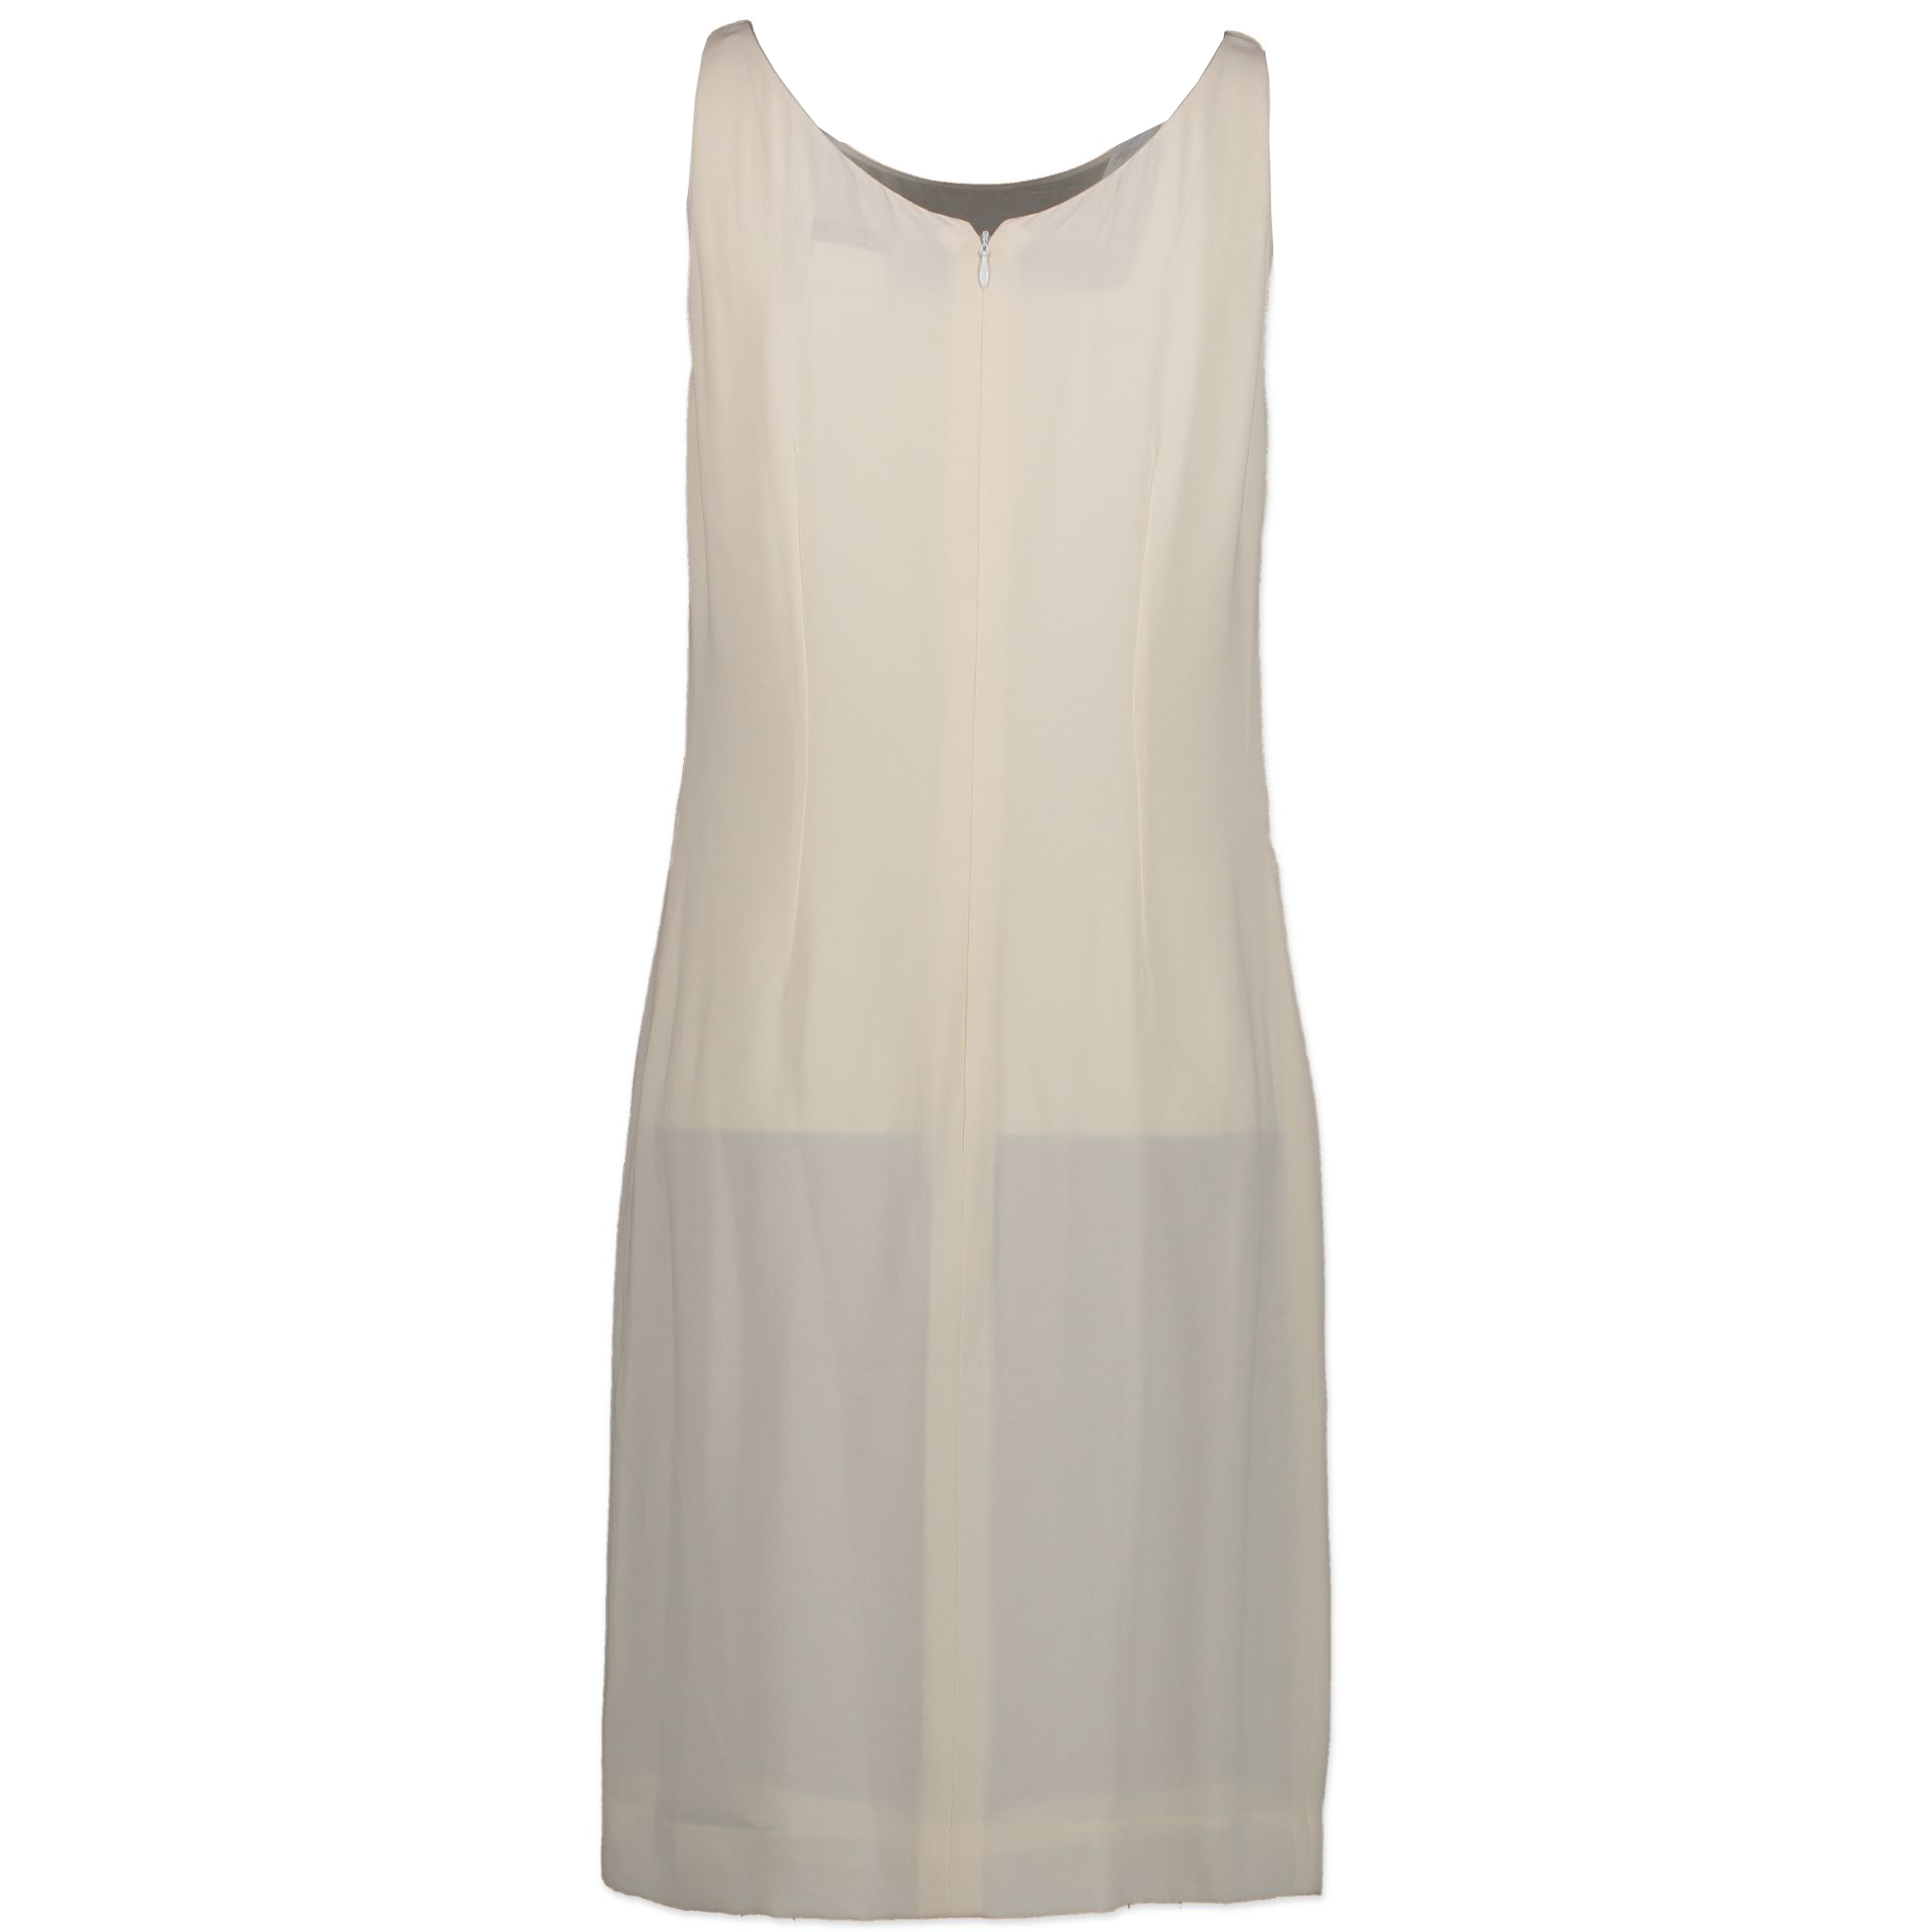 Are you looking for an authentic designer Chanel White Silk Dress for the best price